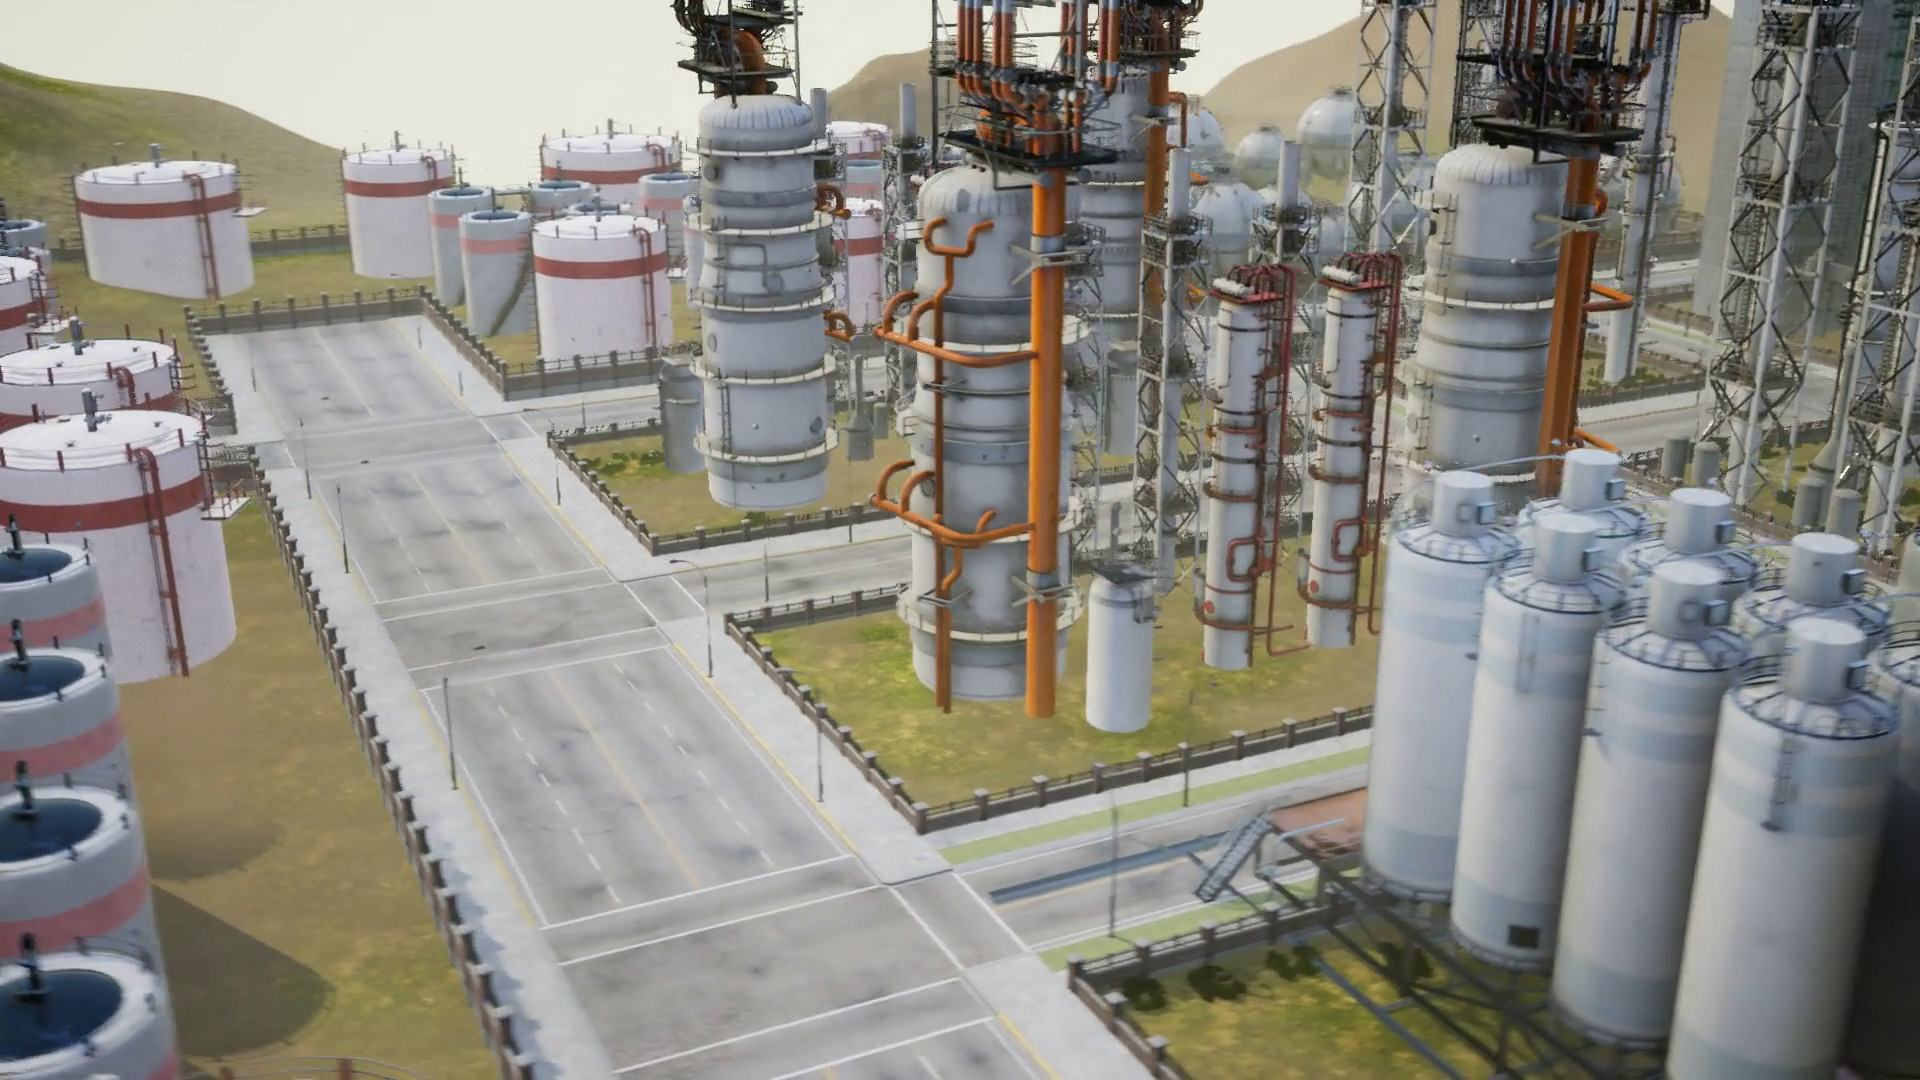 A virtual tour of an oil refinery.